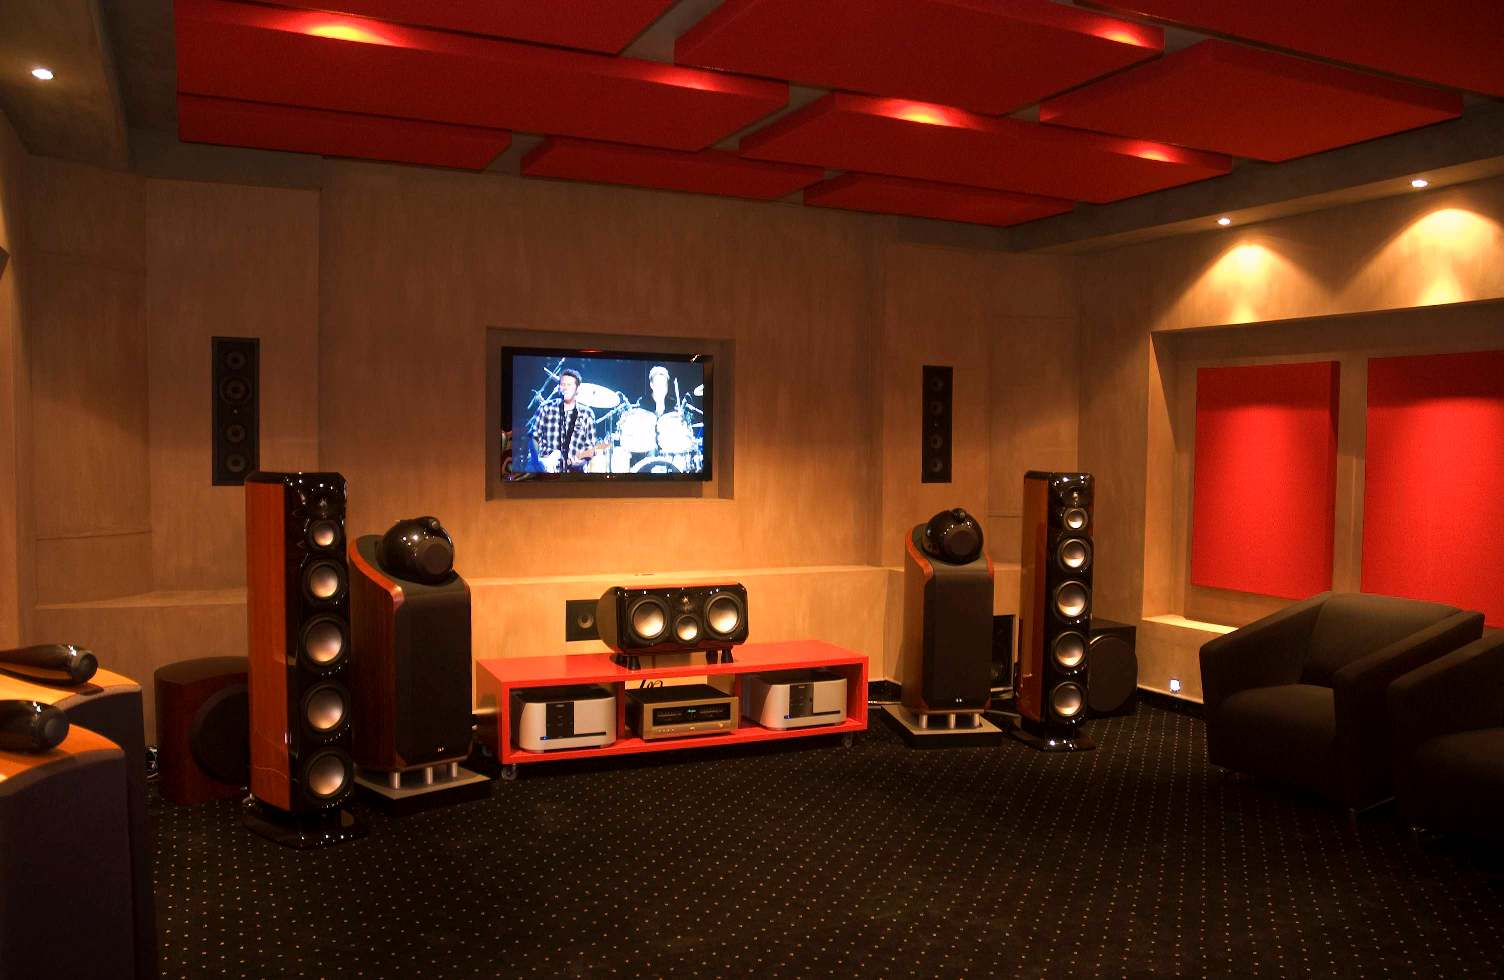 Home Entertainment Spaces - Designing home theater